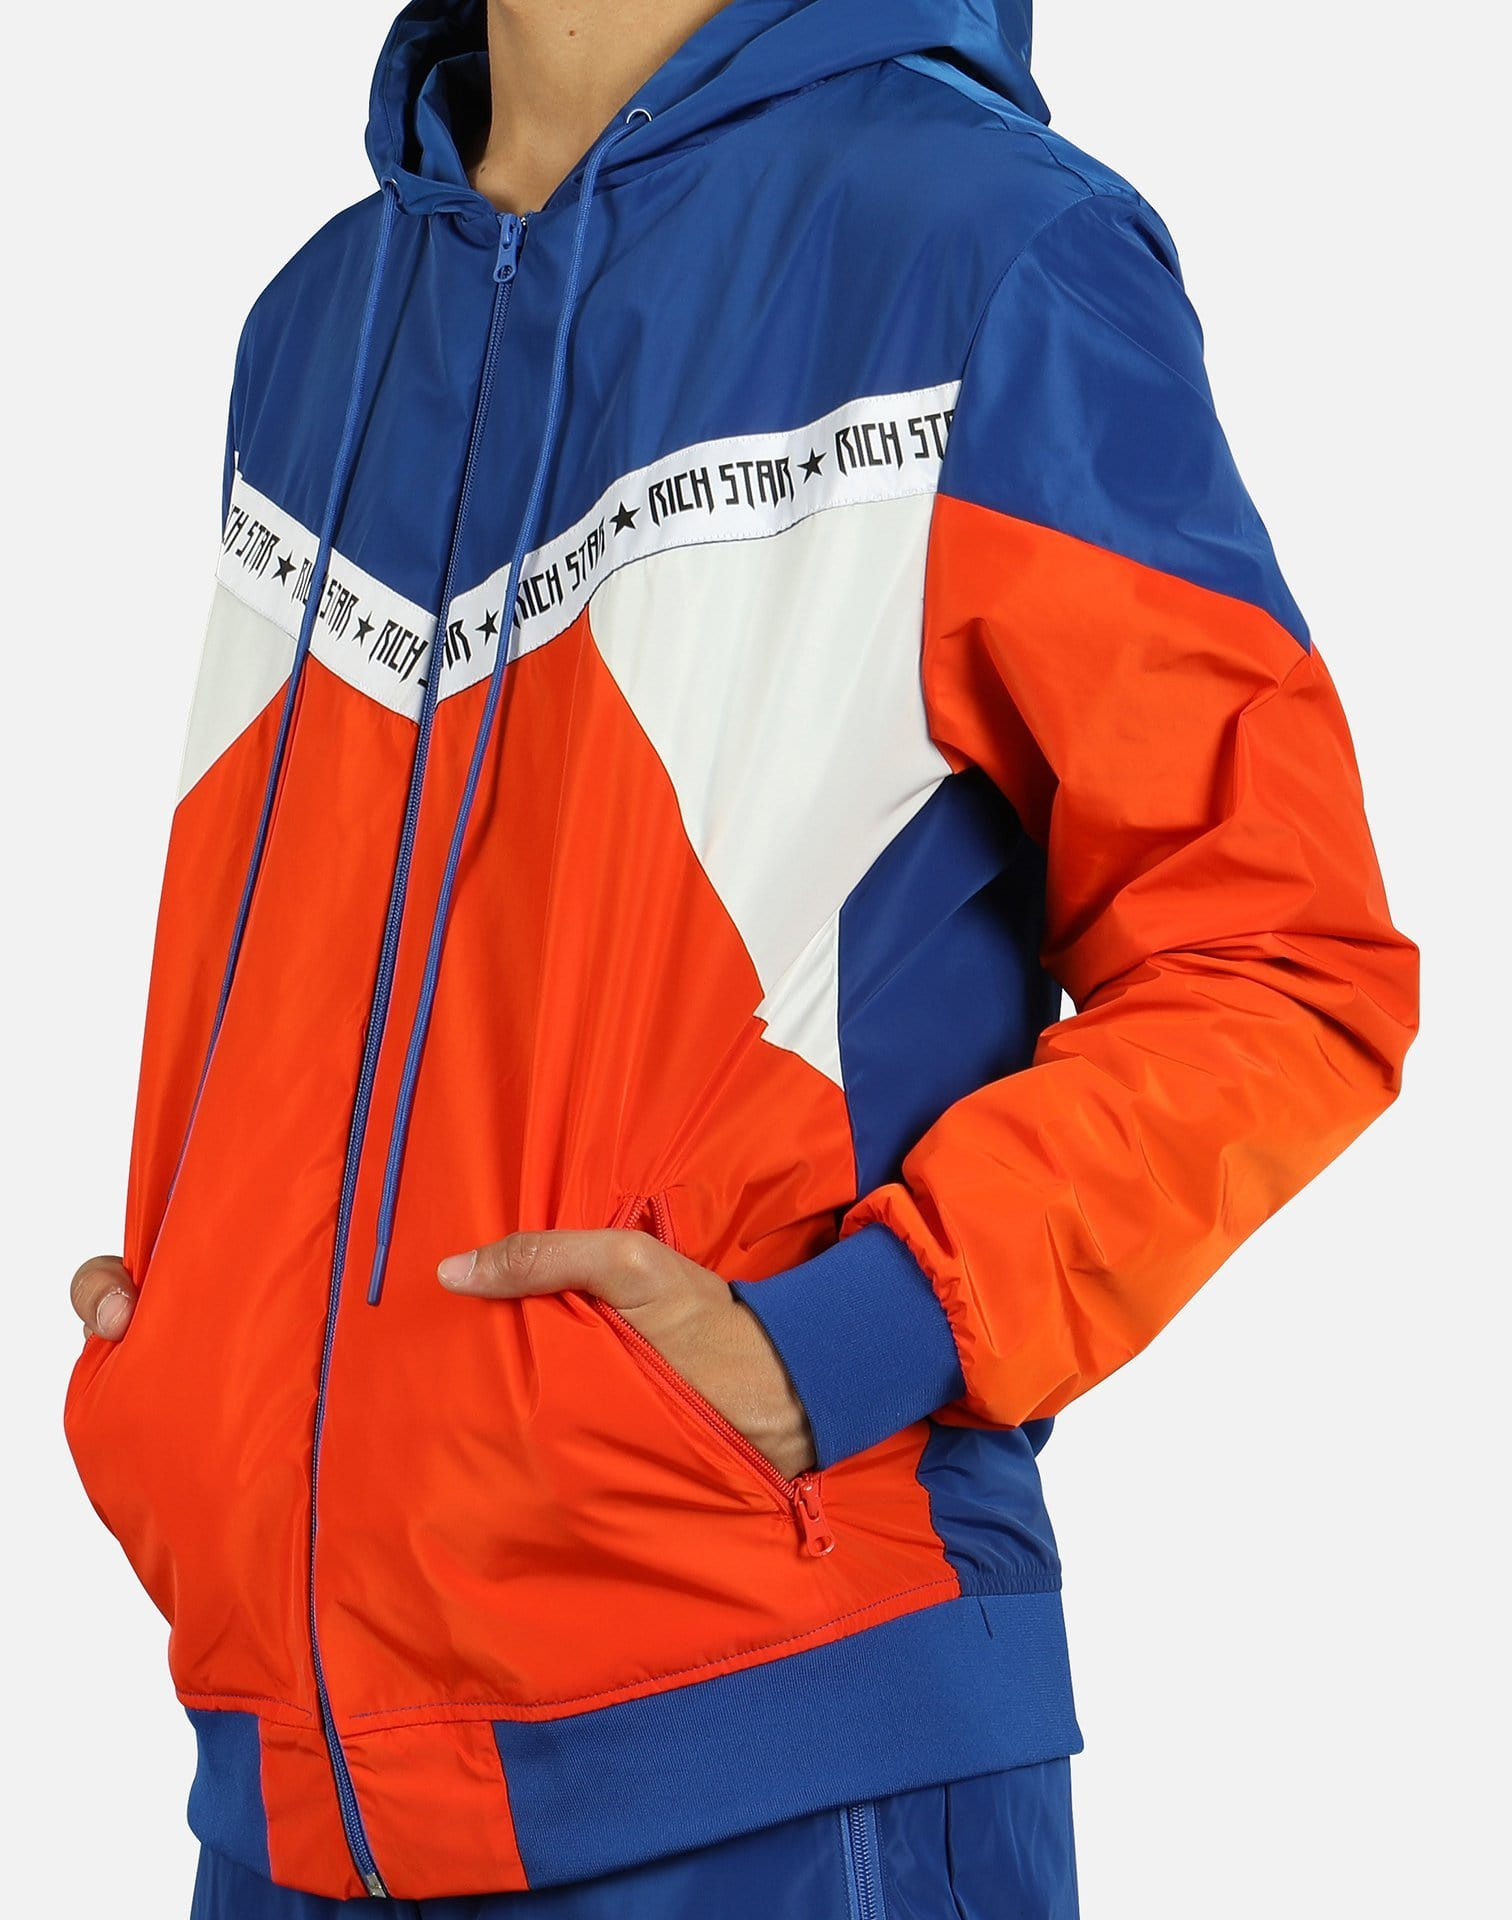 Rich Star Men's Taping Colorblock Track Jacket